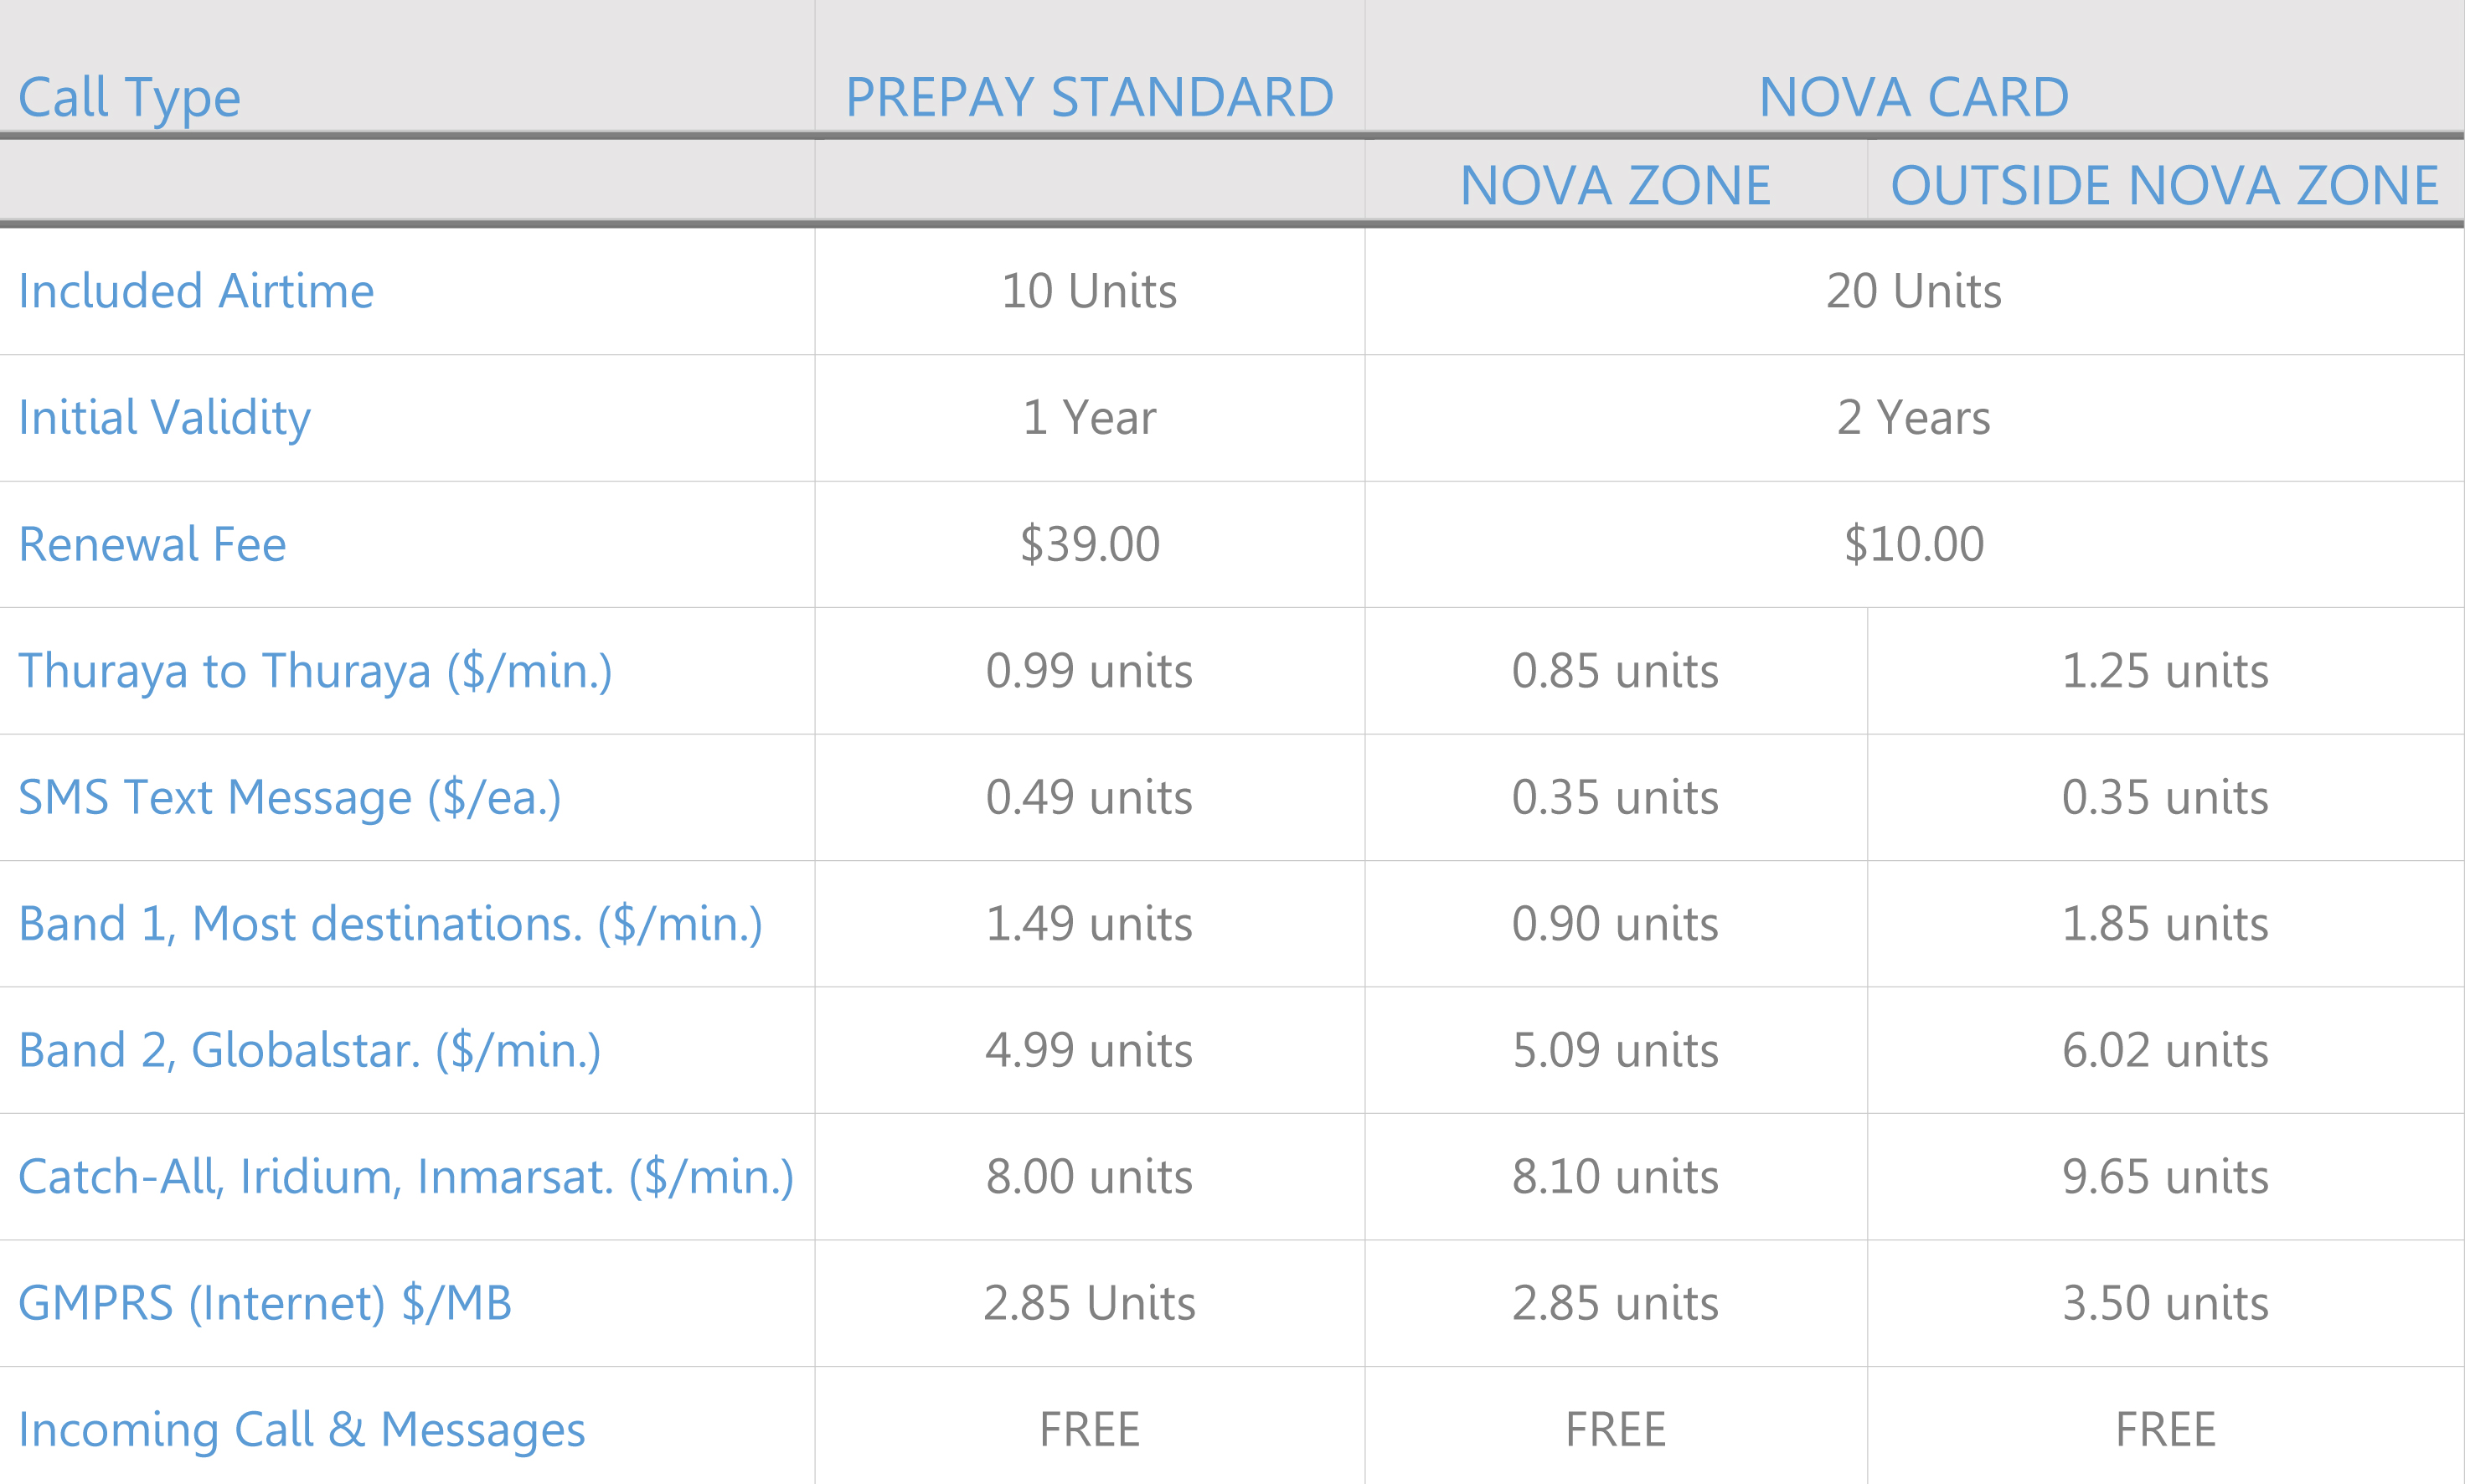 thuraya-call-rates-comparison-chart-standard-prepaid-and-nova-cards-1.jpg